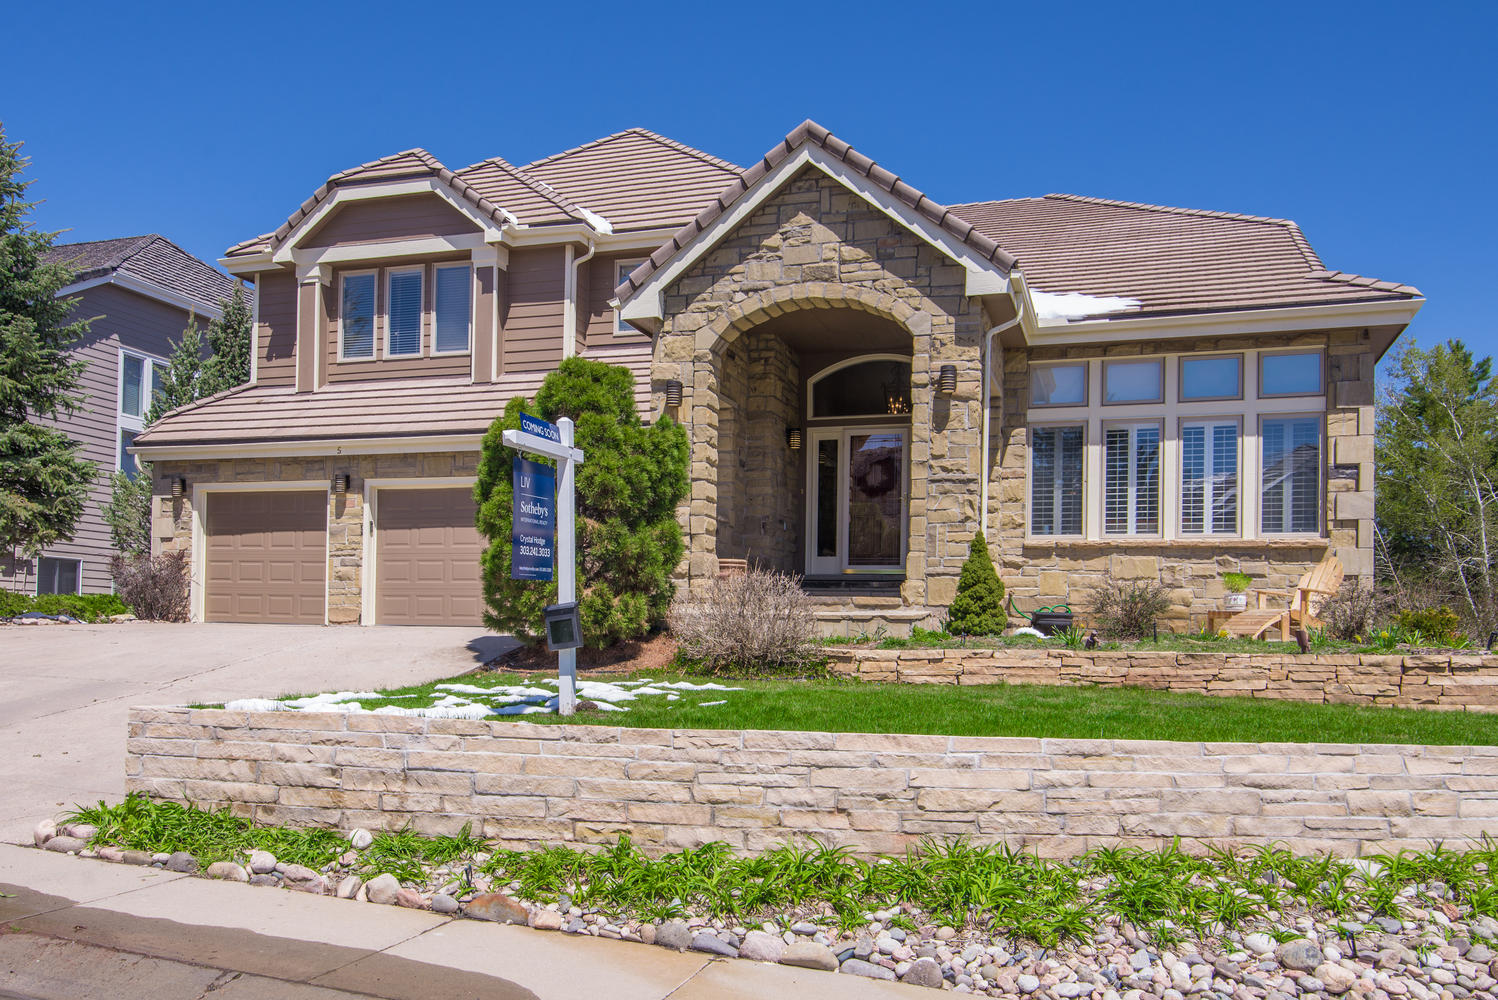 Single Family Home for Sale at Stunning views in Ken Caryl Valley 5 Prairie Clover Littleton, Colorado, 80127 United States